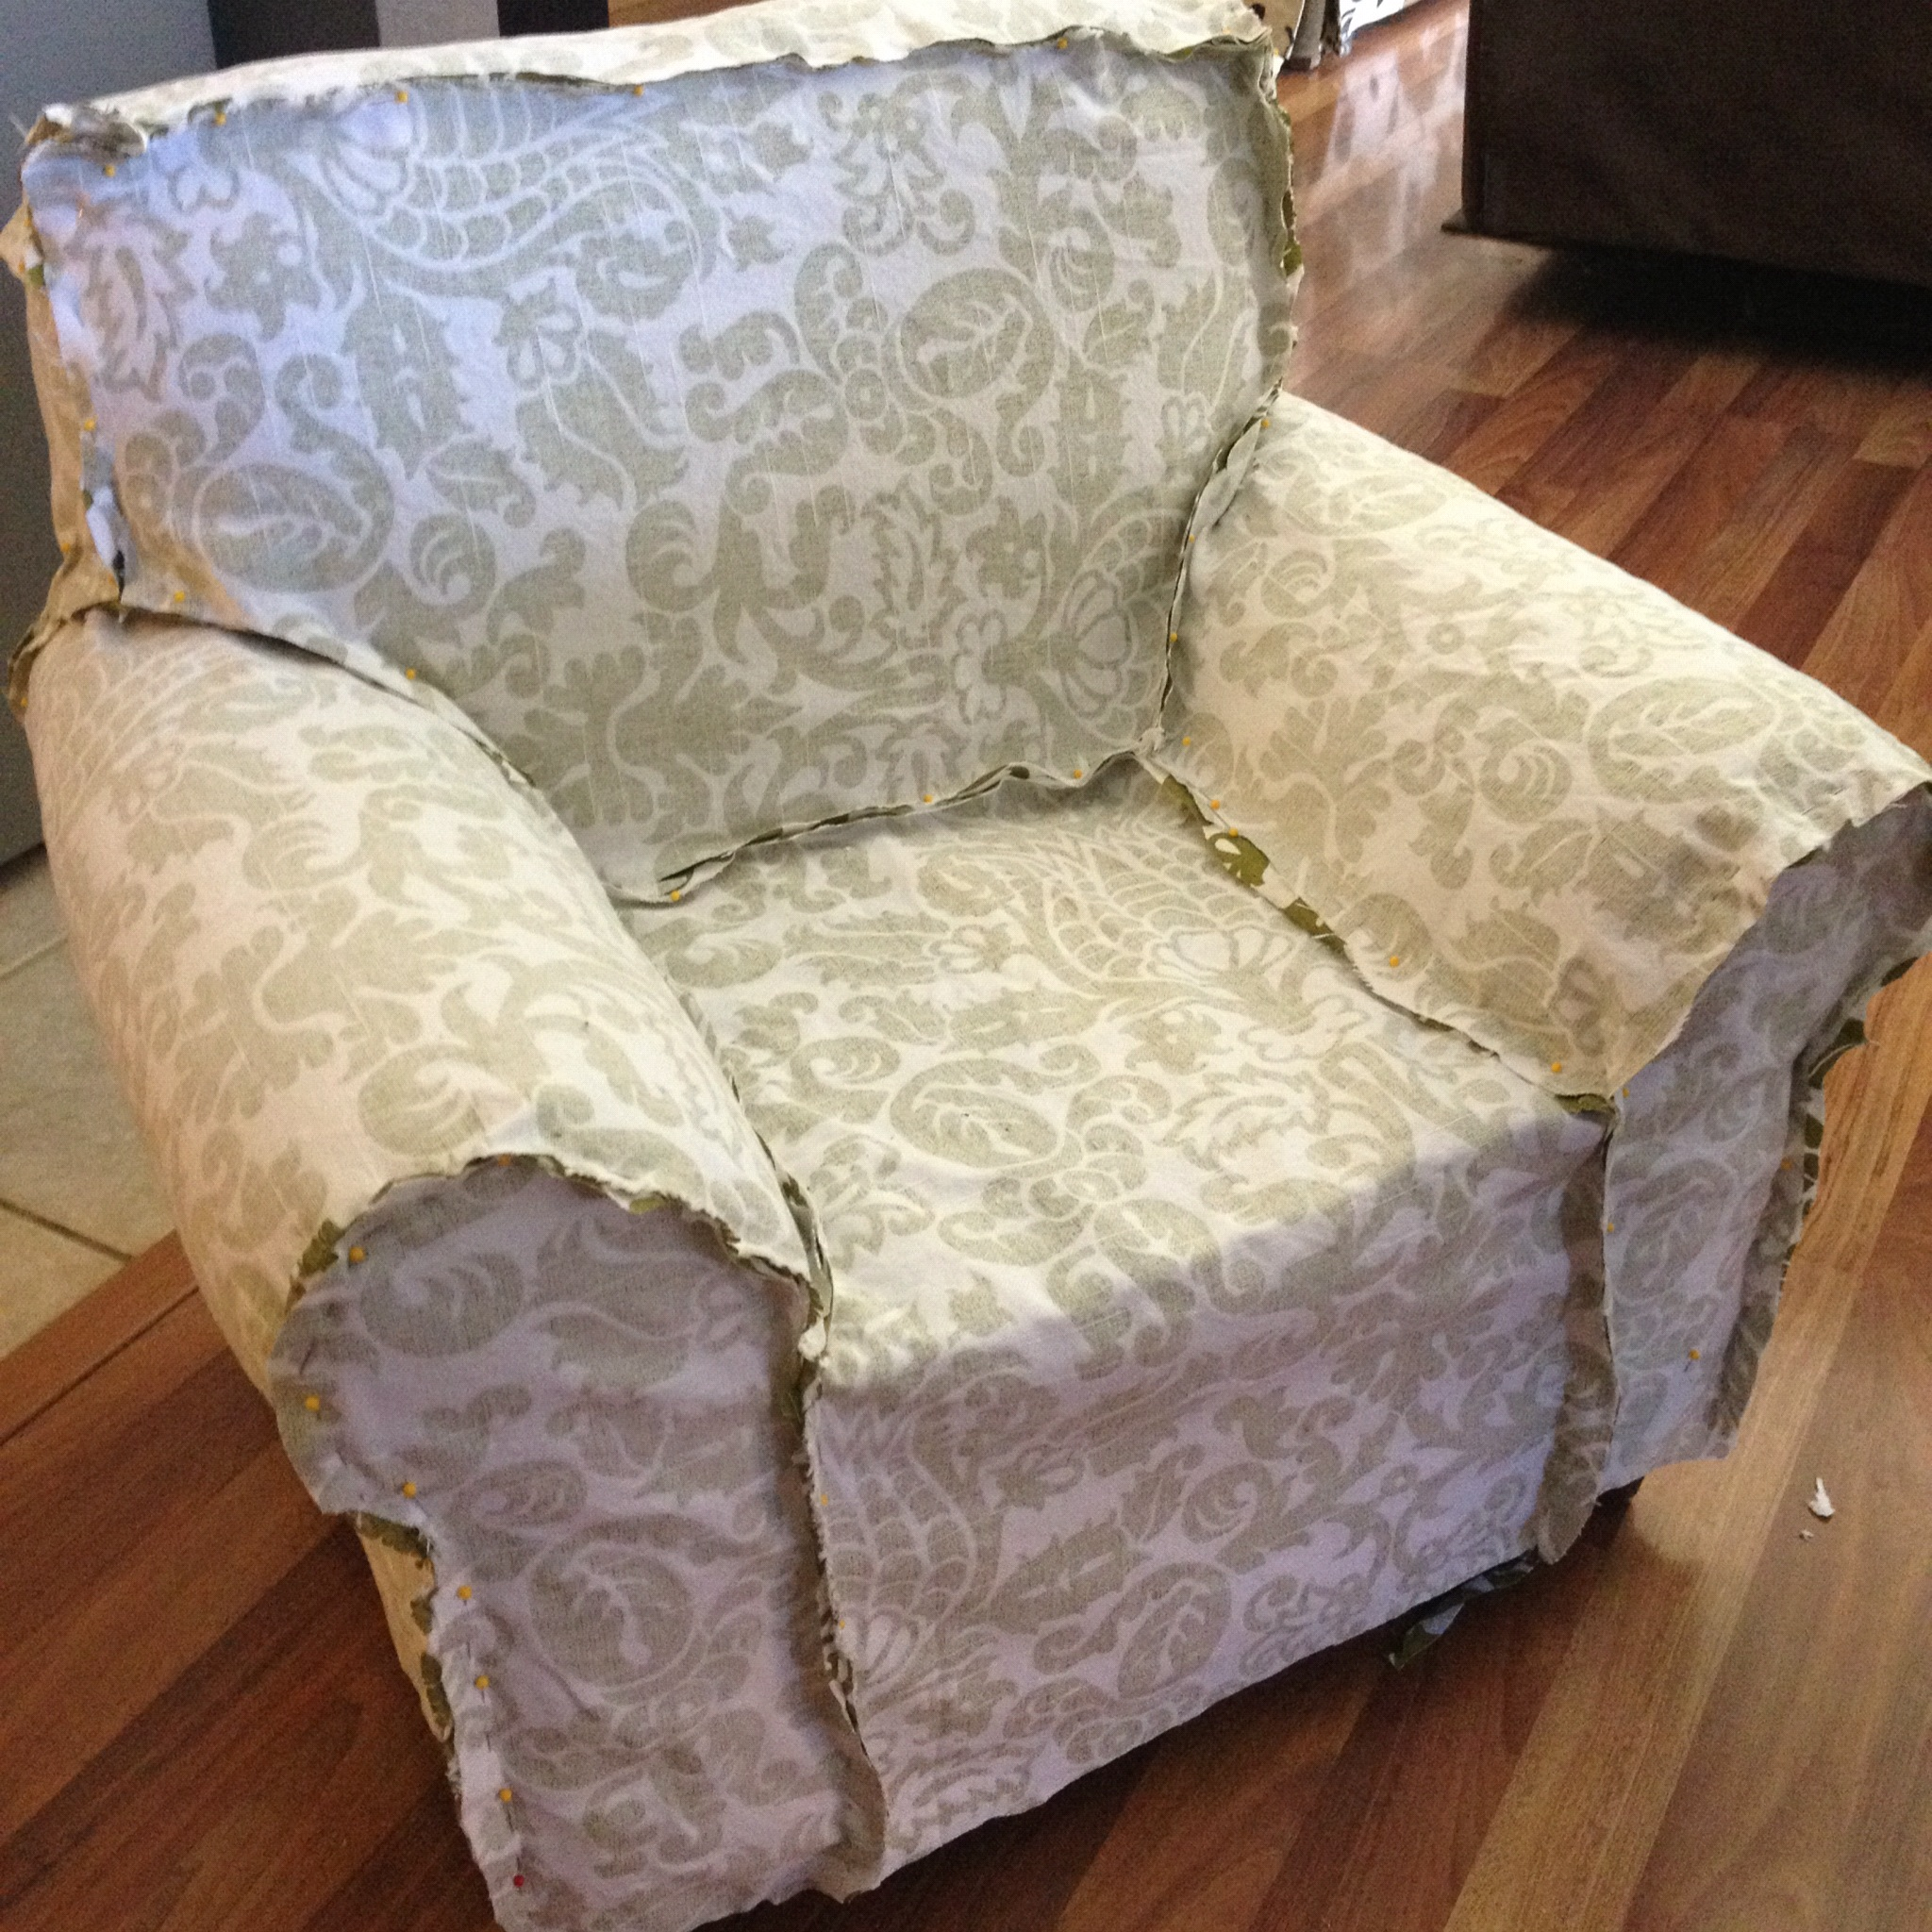 Creating A Slipcover DIY Upholstery Project